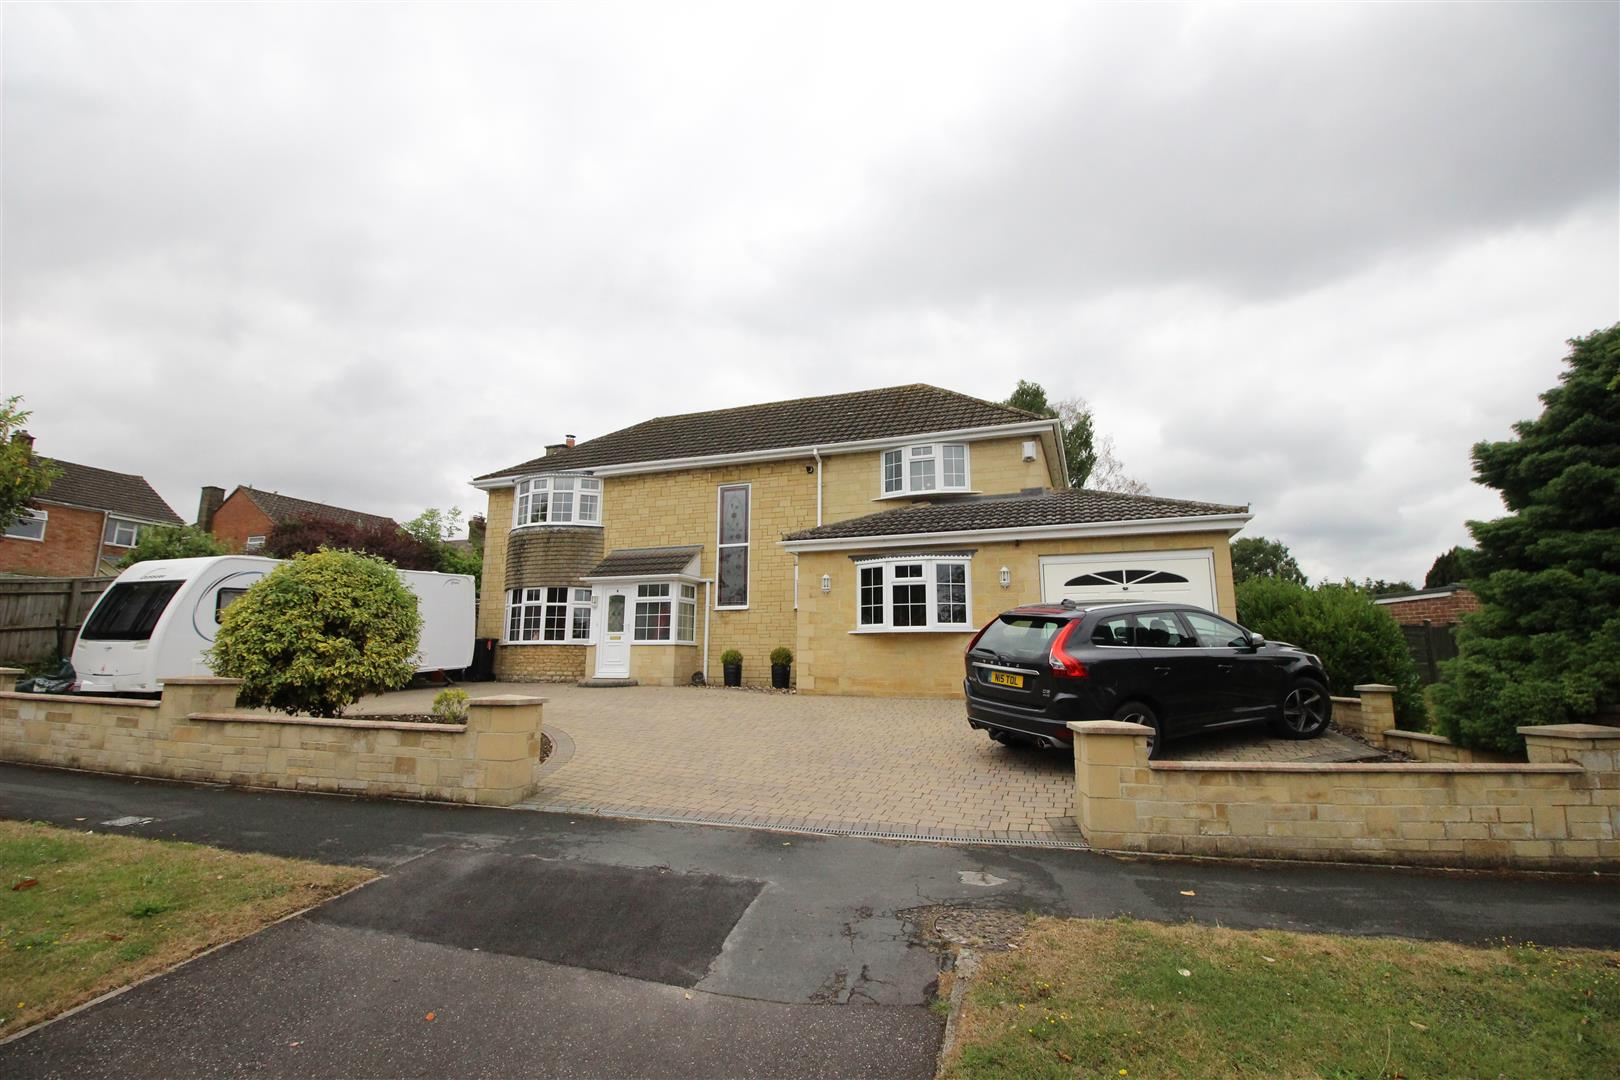 4 Bedrooms Detached House for sale in Sandringham Road, Lawn, Swindon